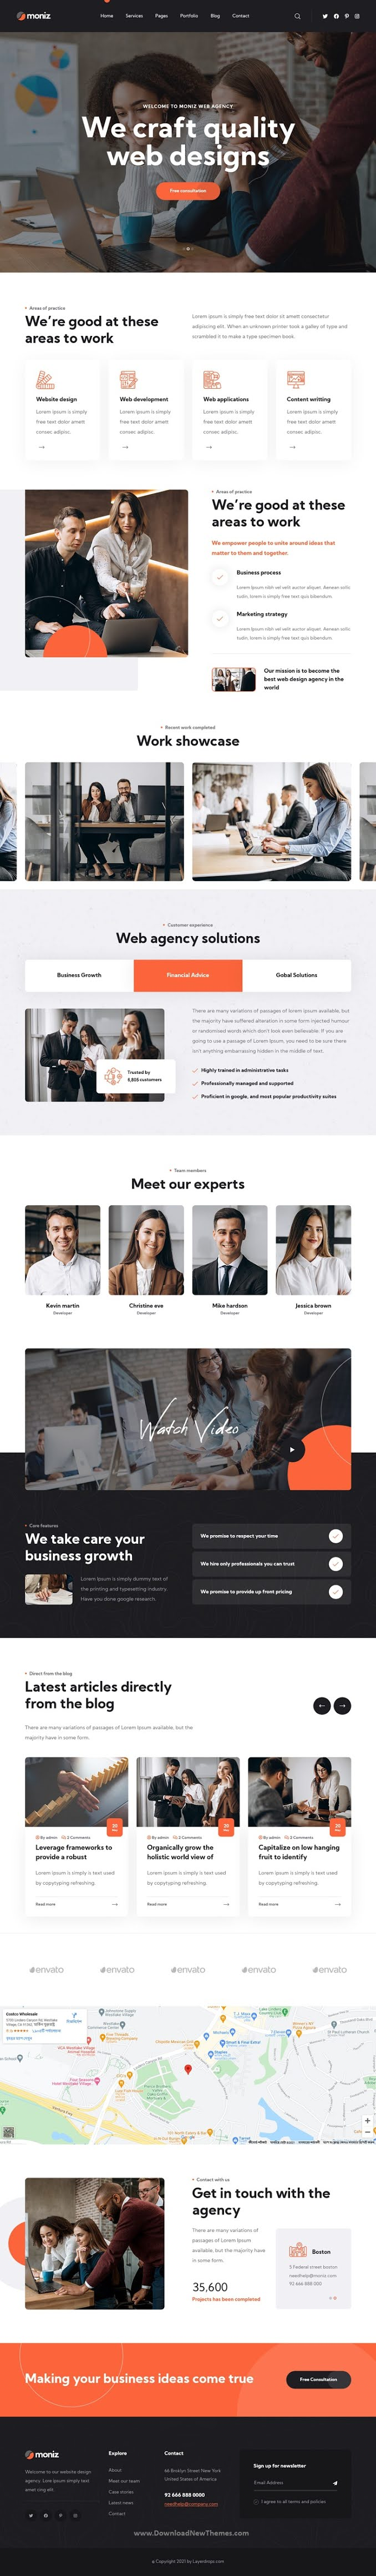 Web Design Agency Bootstrap Template